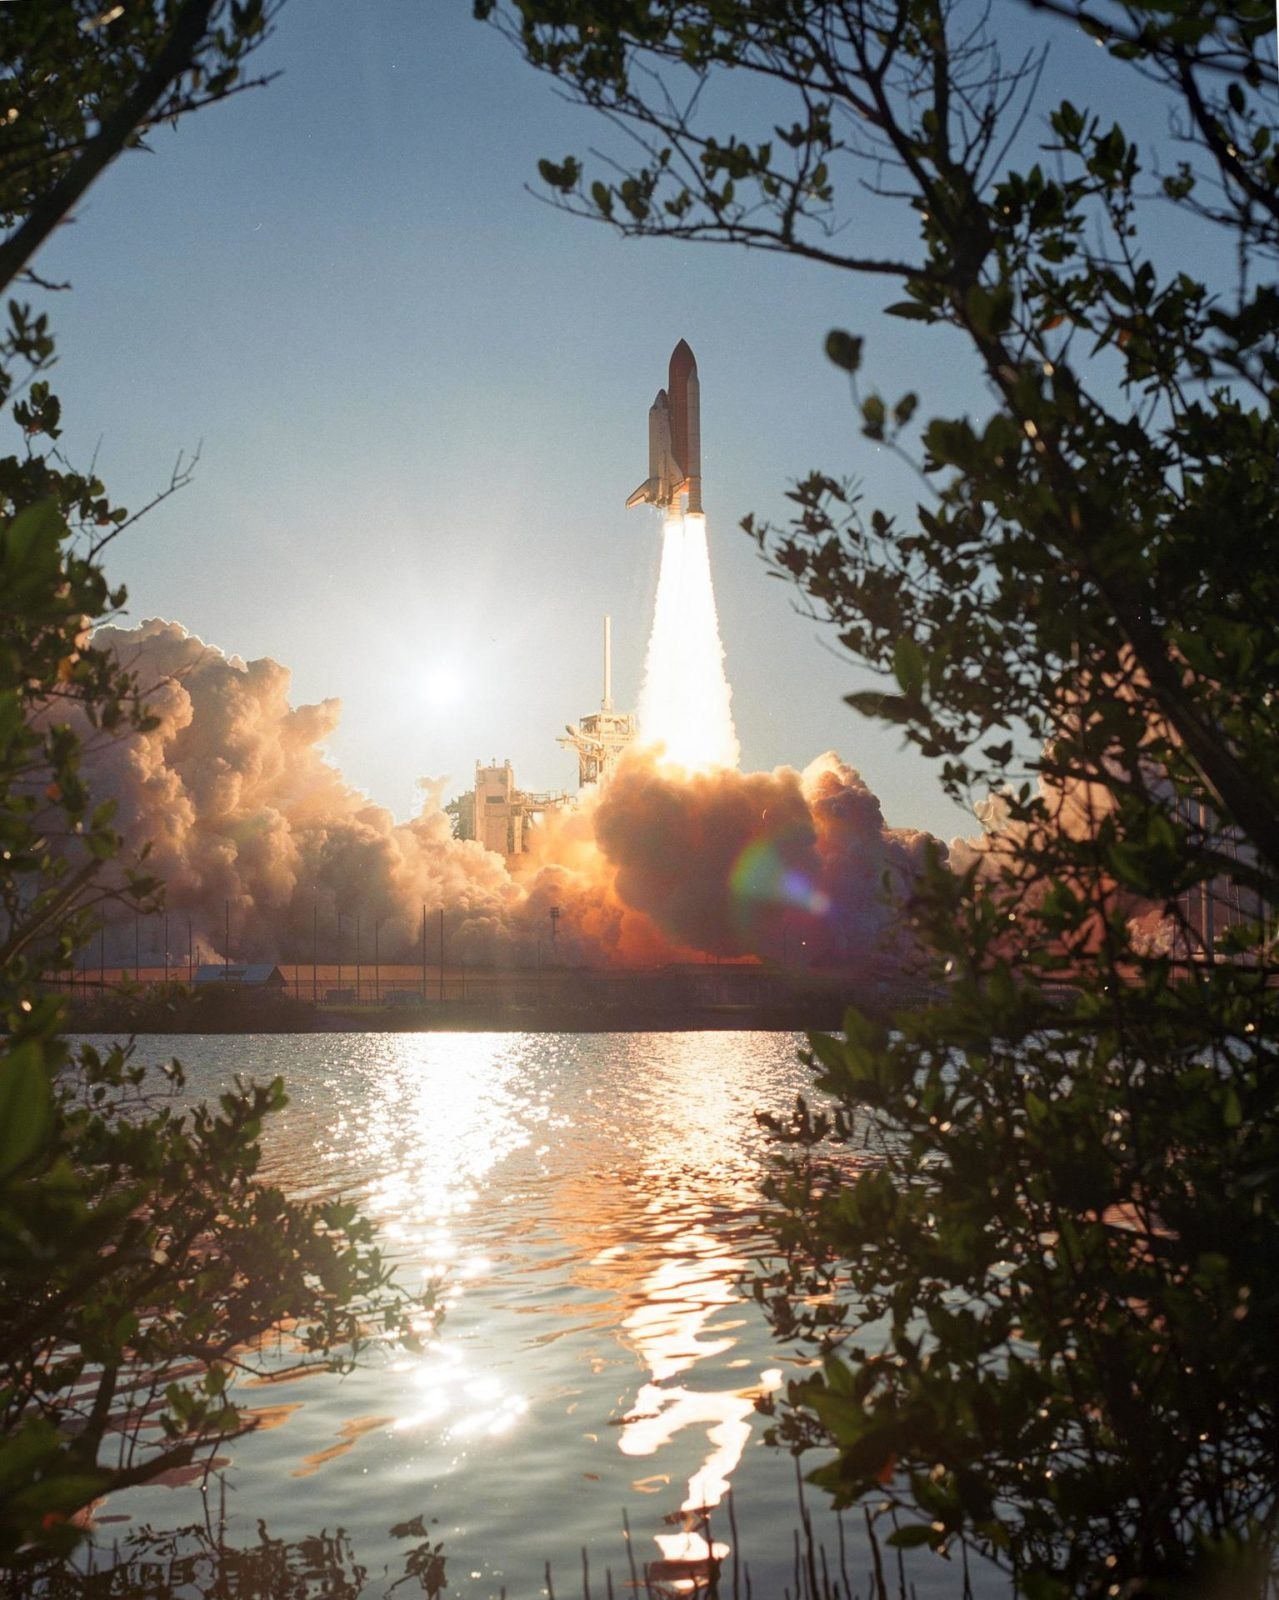 """STS117-S-034 (8 June 2007) --- The Space Shuttle Atlantis and its seven-member STS-117 crew head toward Earth-orbit and a scheduled link-up with the International Space Station. Liftoff from Kennedy Space Center's launch pad 39A occurred at 7:38 p.m. (EDT) on June 8, 2007. Onboard are astronauts Rick Sturckow, commander; Lee Archambault, pilot; Jim Reilly, Patrick Forrester, John """"Danny"""" Olivas, Steven Swanson and Clayton Anderson, all mission specialists. Anderson will join Expedition 15 in progress to serve as a flight engineer aboard the station. Atlantis will dock with the orbital outpost on Sunday, June 10, to begin a joint mission that will increase the complex's power generation capability. Using the shuttle and station robotic arms and conducting three scheduled spacewalks, the astronauts will install another set of giant solar array wings on the station and retract another array, preparing it for a future move. STS117-S-034"""